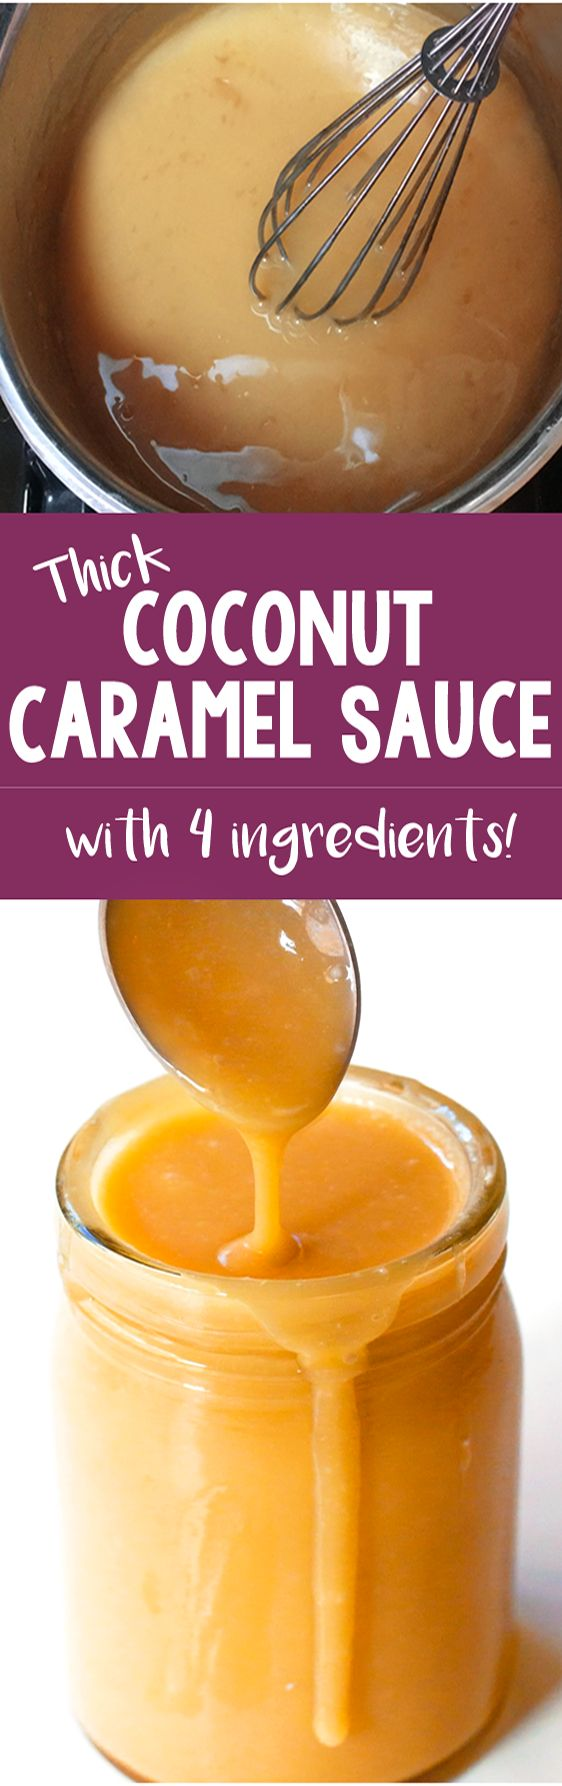 How To Turn A Can Of Coconut Milk Into Caramel! And it's a vegan and paleo recipe as well